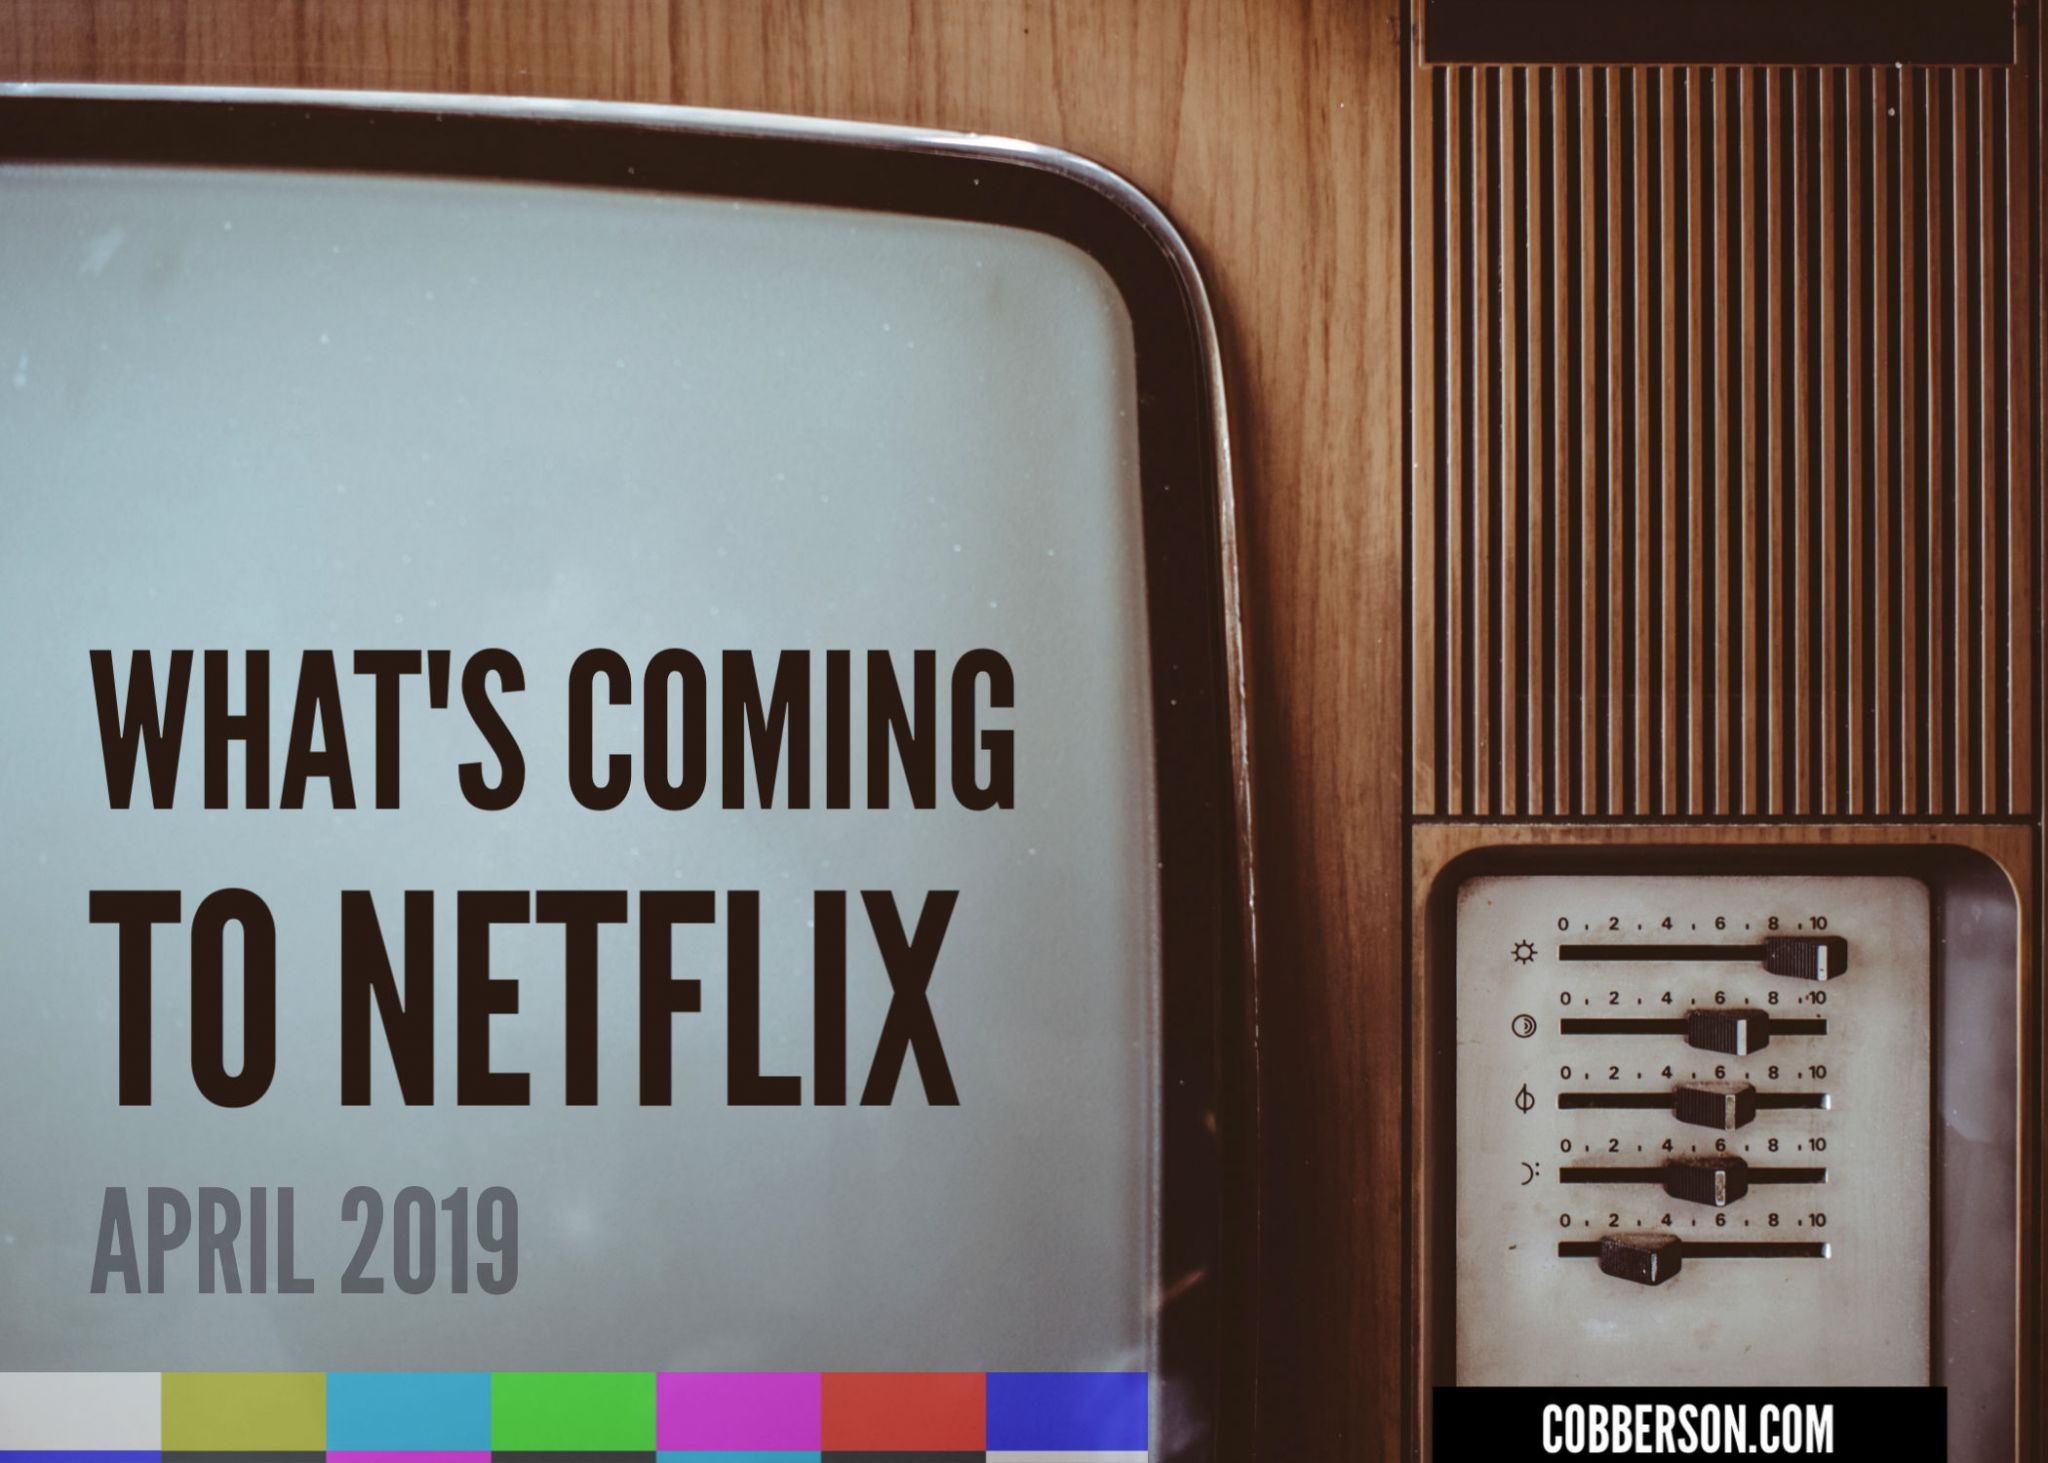 whats coming to netflix APRIL 2019 cobberson